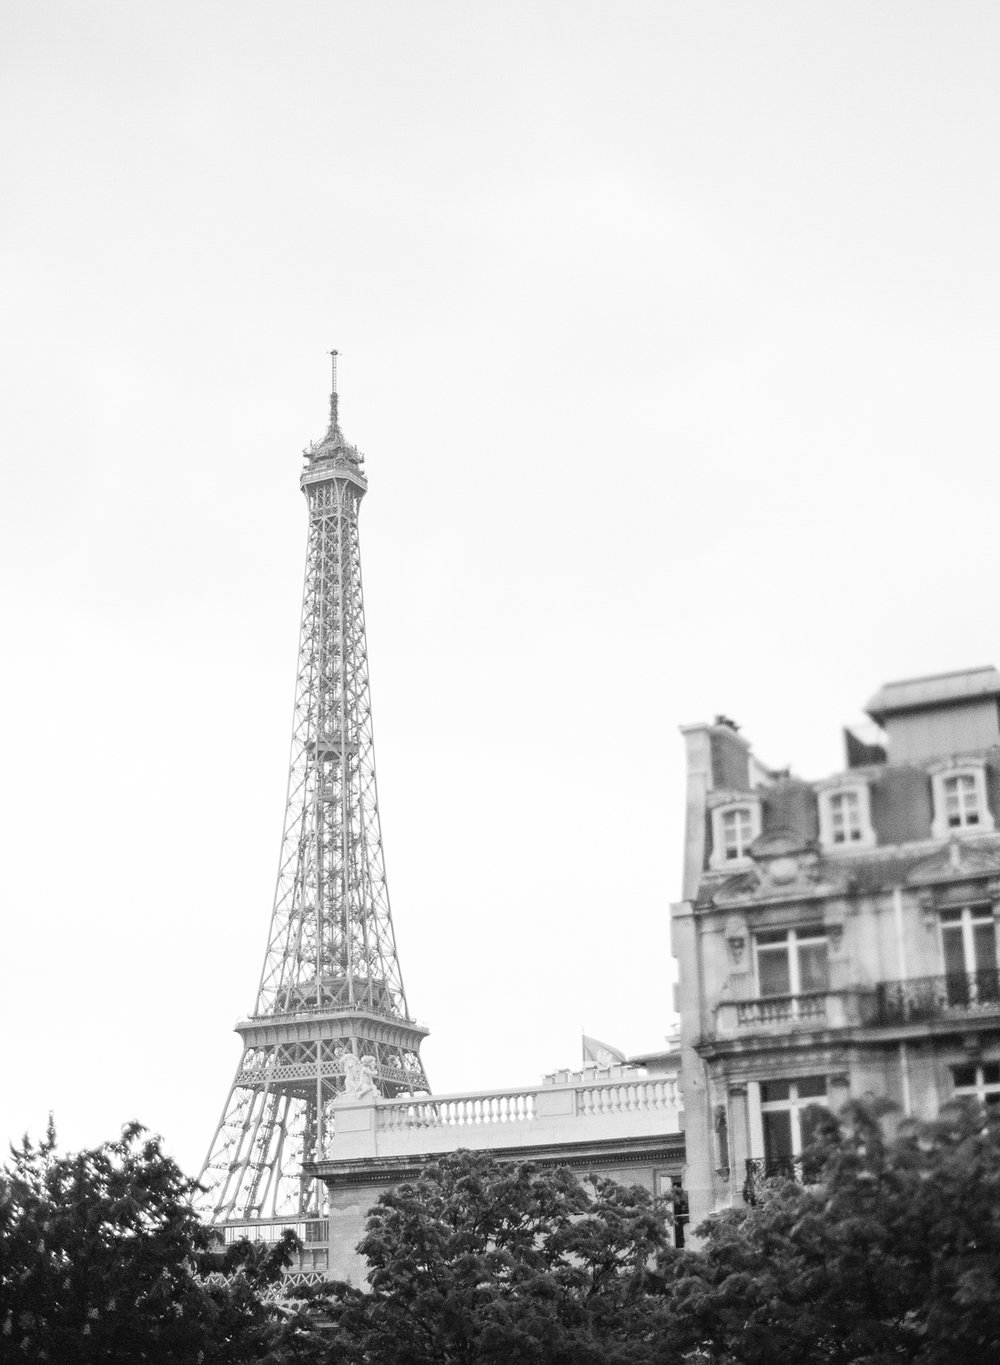 The Eiffel Tower, or Tour d'Eiffel in Paris, France; Sylvie Gil Photography